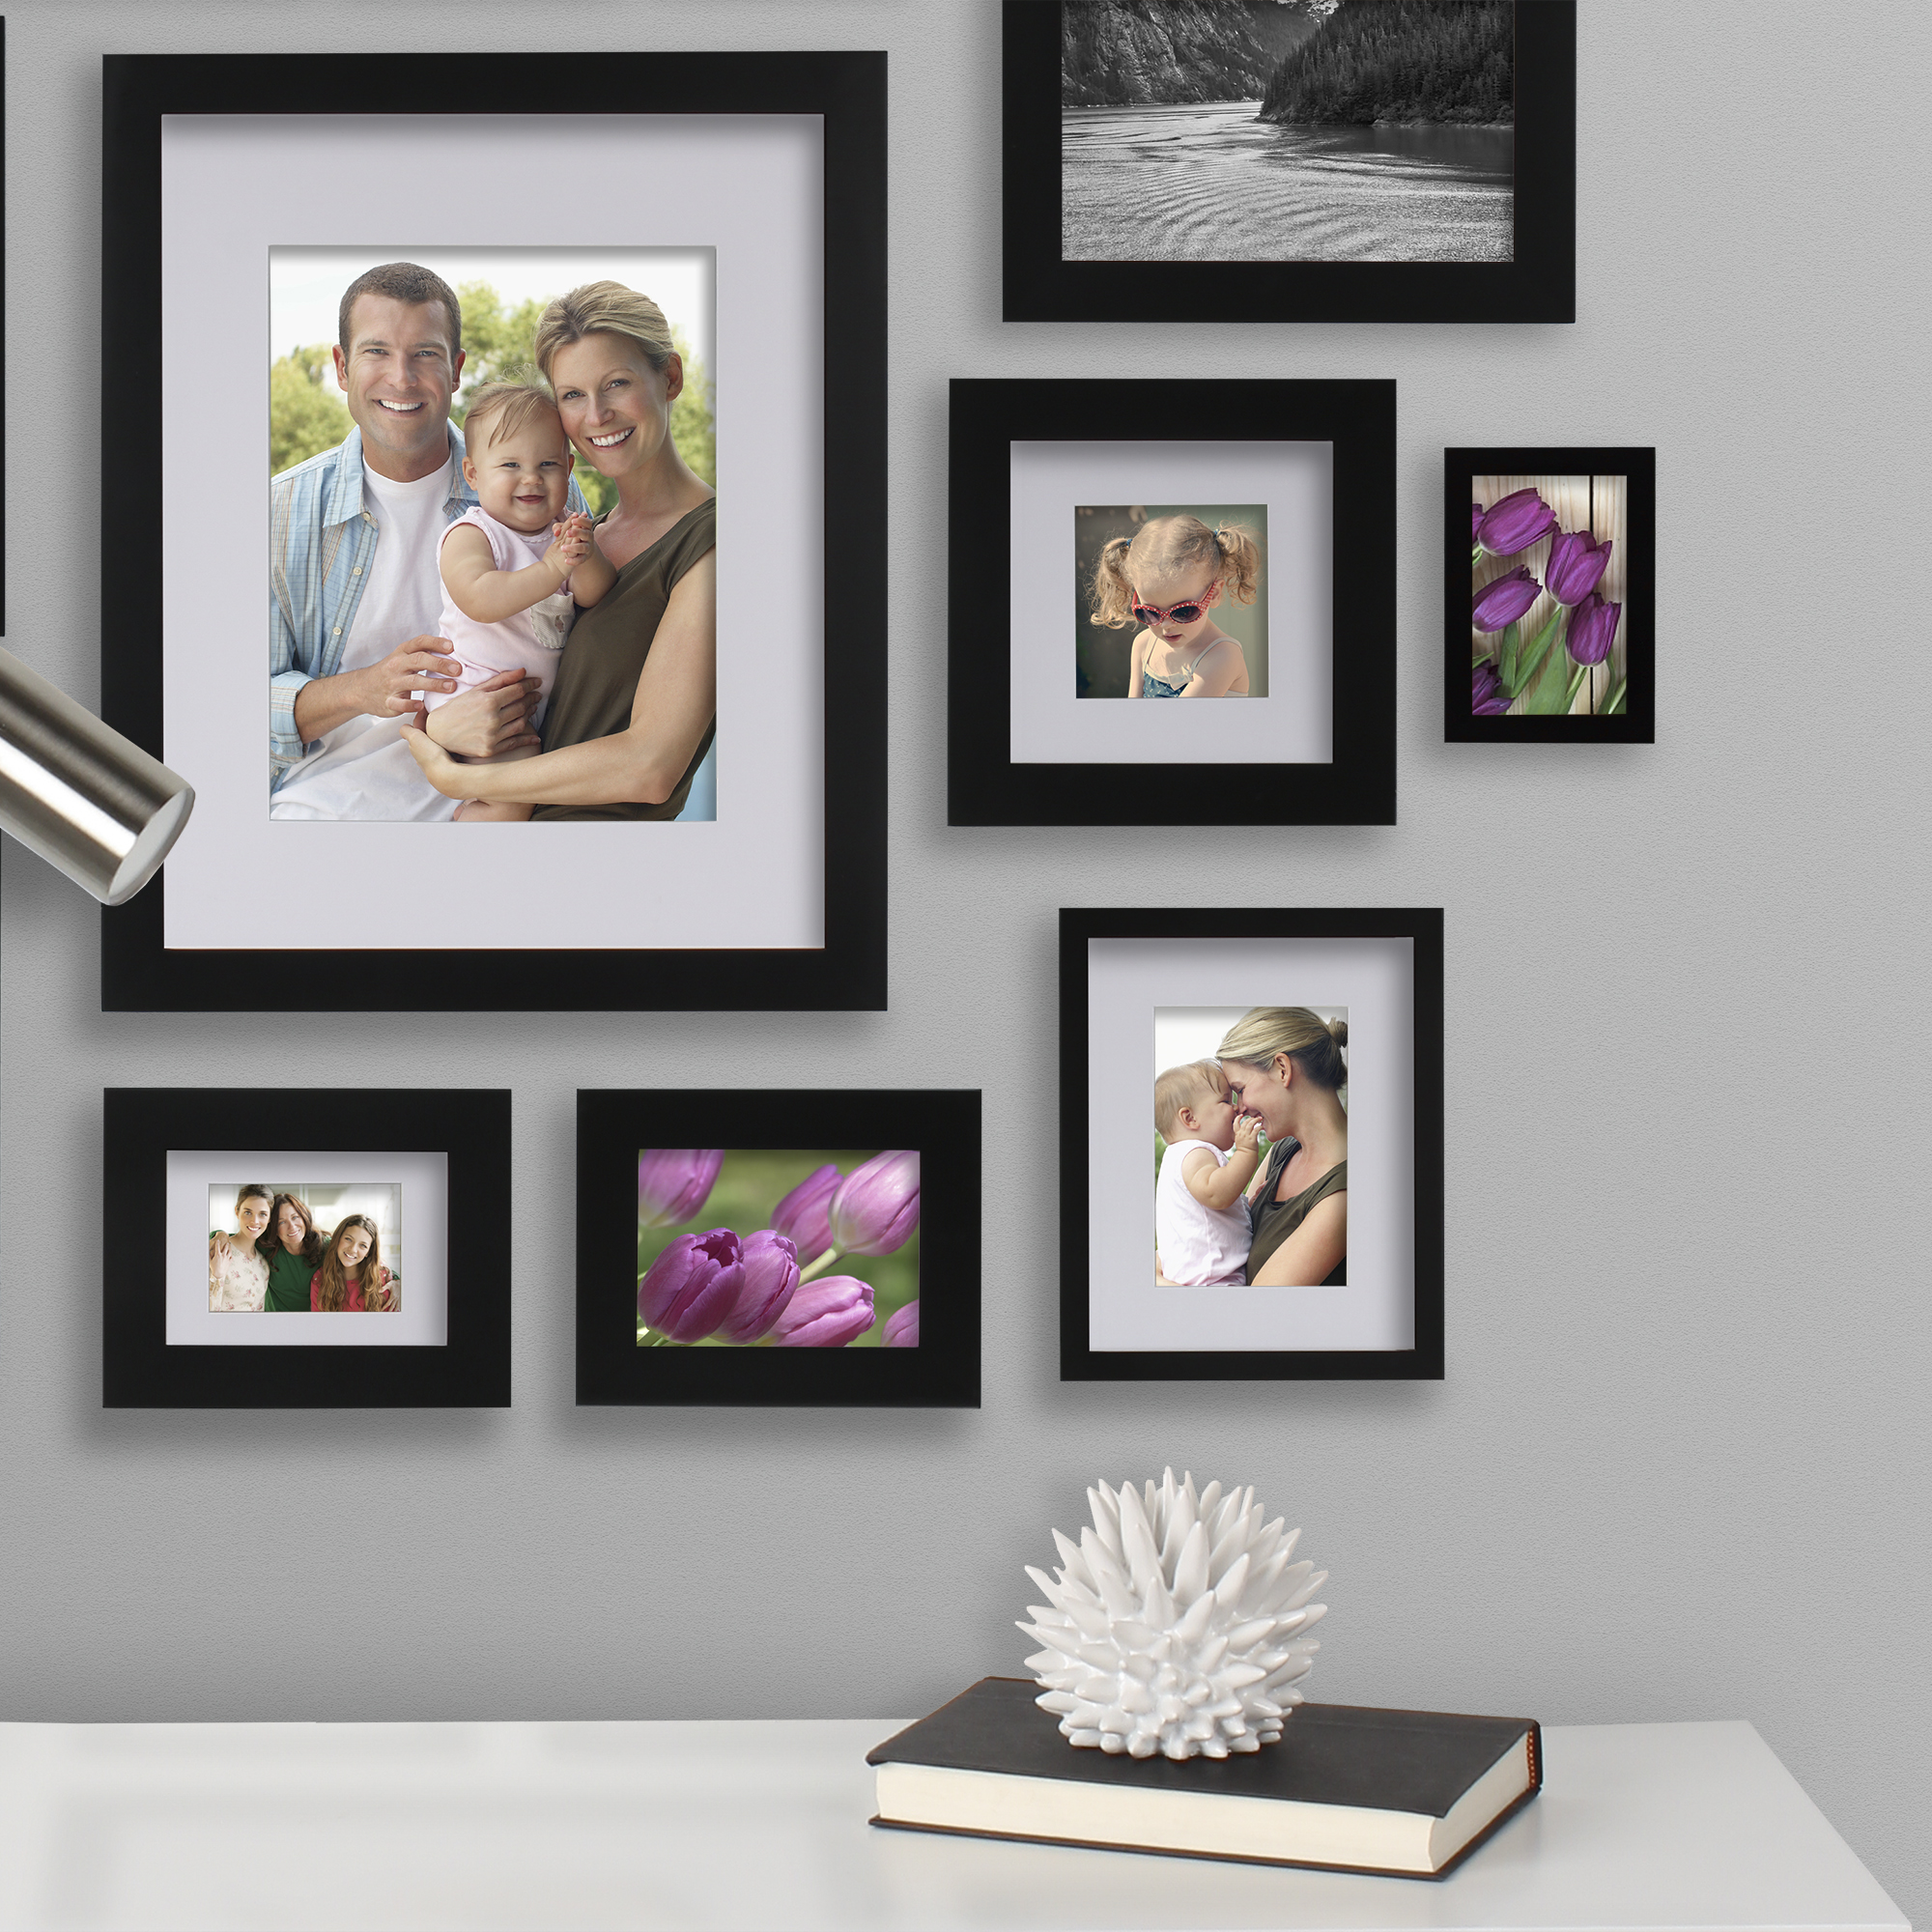 Better homes and gardens black picture frame 16 x 20 matted to better homes and gardens black picture frame 16 x 20 matted to 11 x 14 walmart jeuxipadfo Image collections